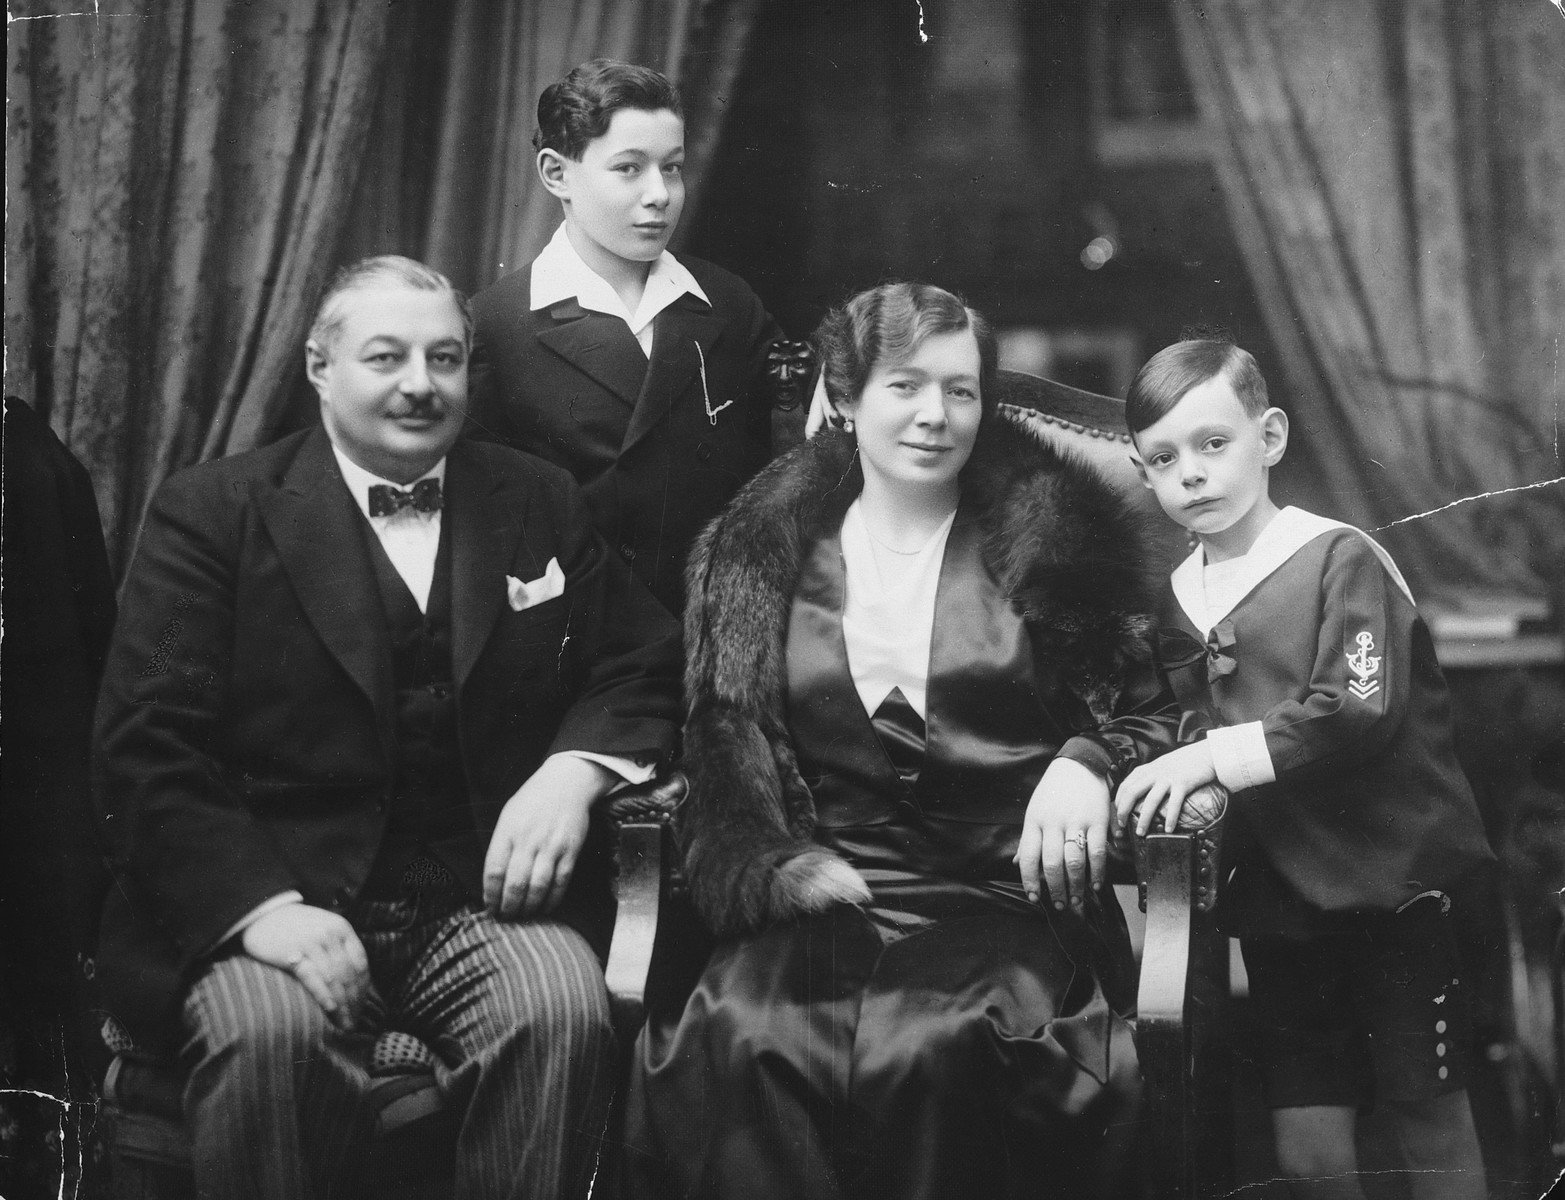 Studio portrait of a Hungarian-Jewish family.  Pictured from left to right are Zoltan, Paul, Iren and Robert Fisch.